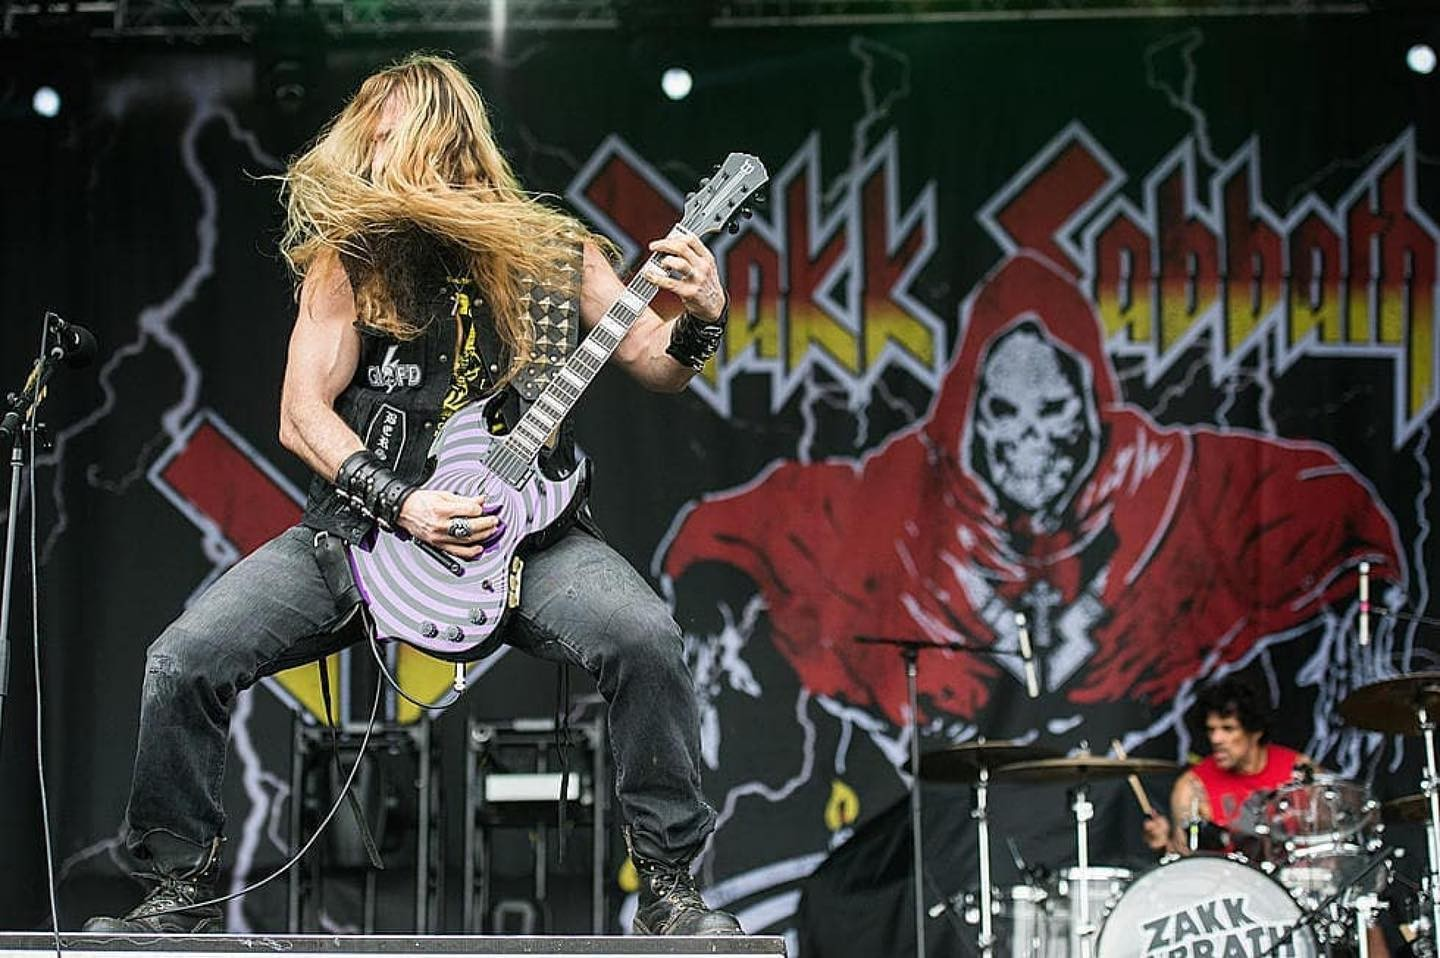 Photo/picture of the band/Artist ZAKK SABBATH